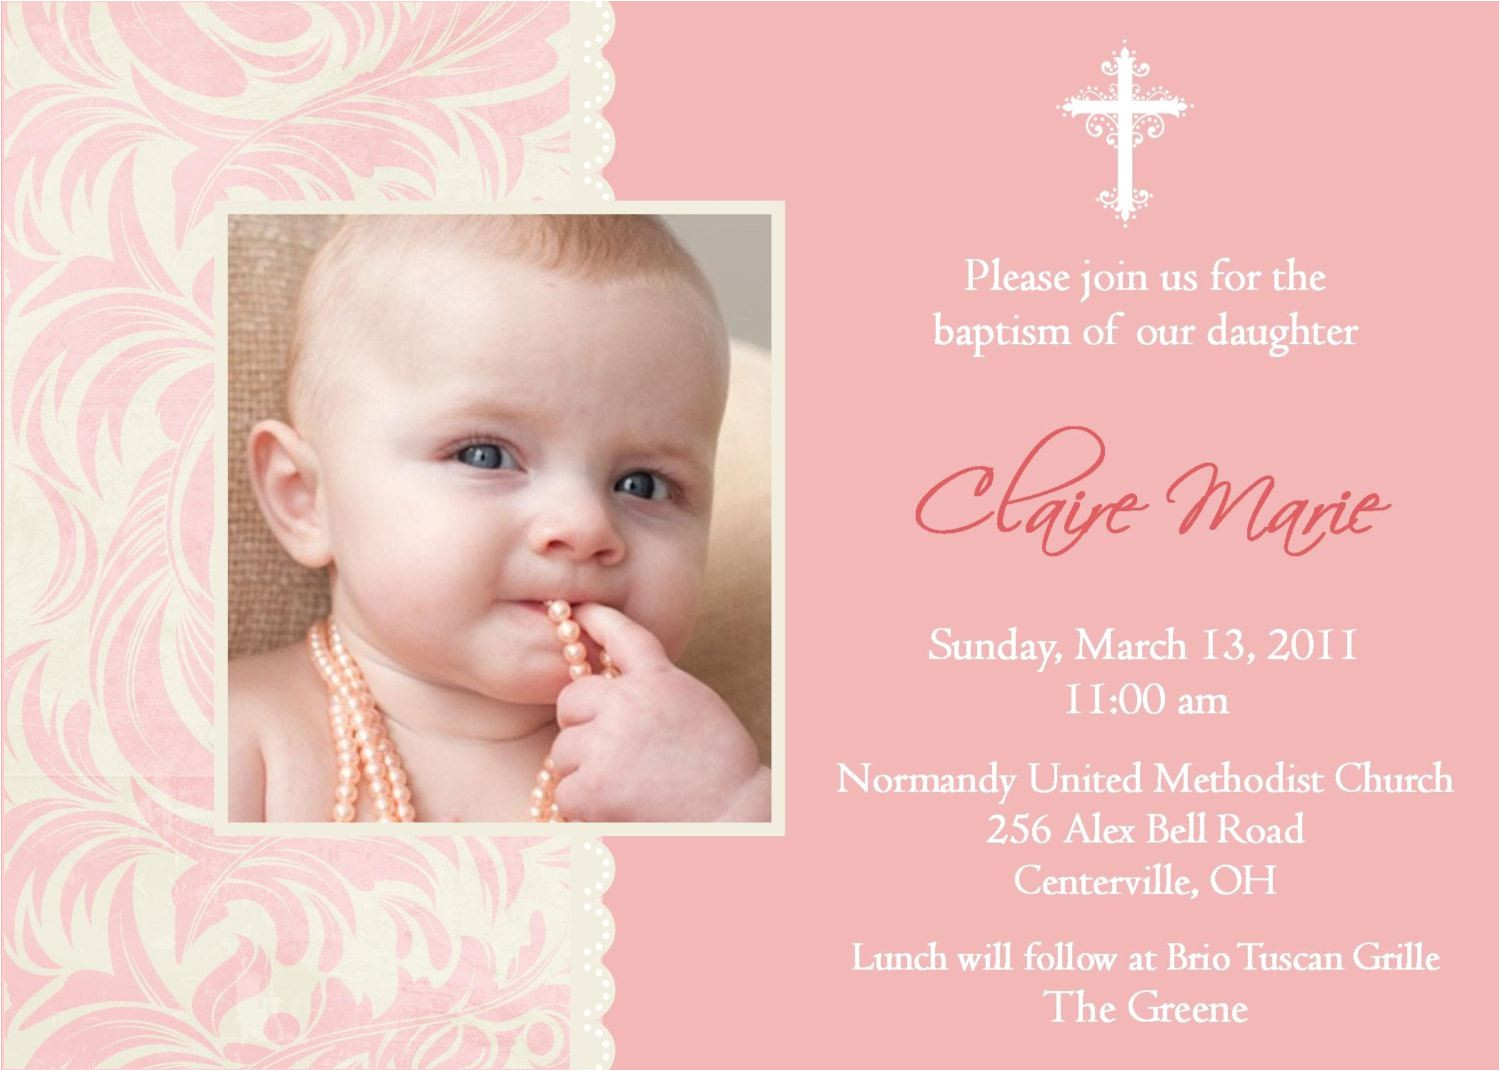 blank christening invitation for baby girl